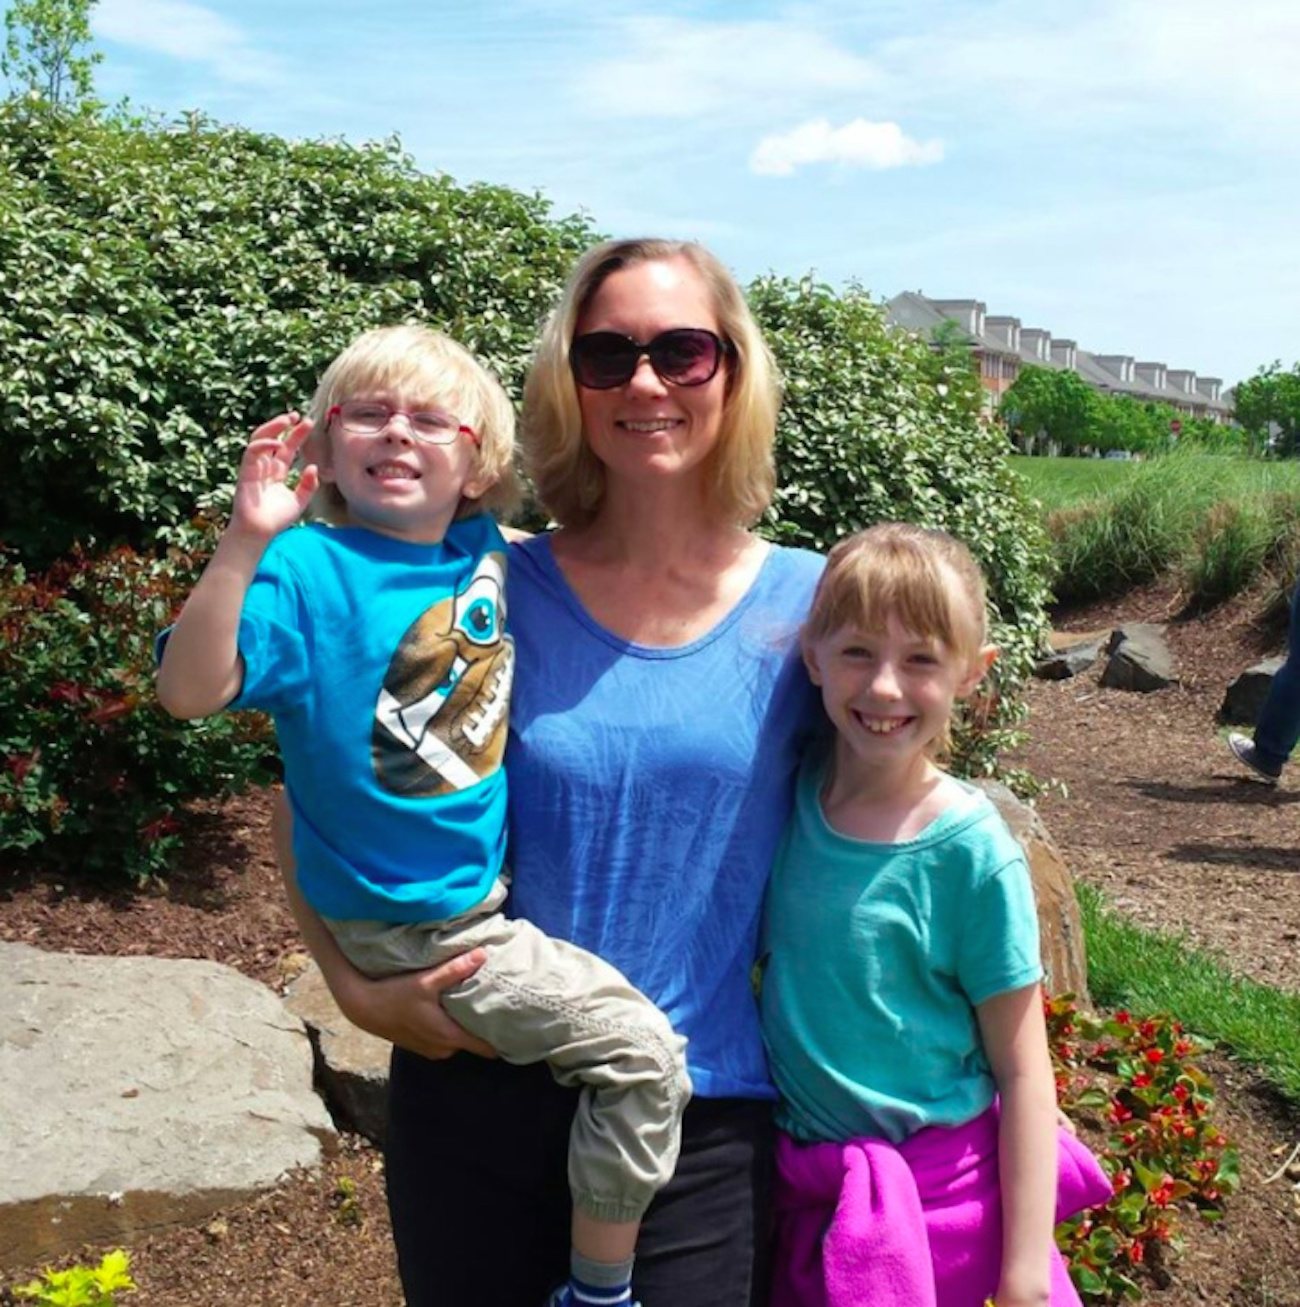 mom holding son and standing next to daughter near garden outdoors